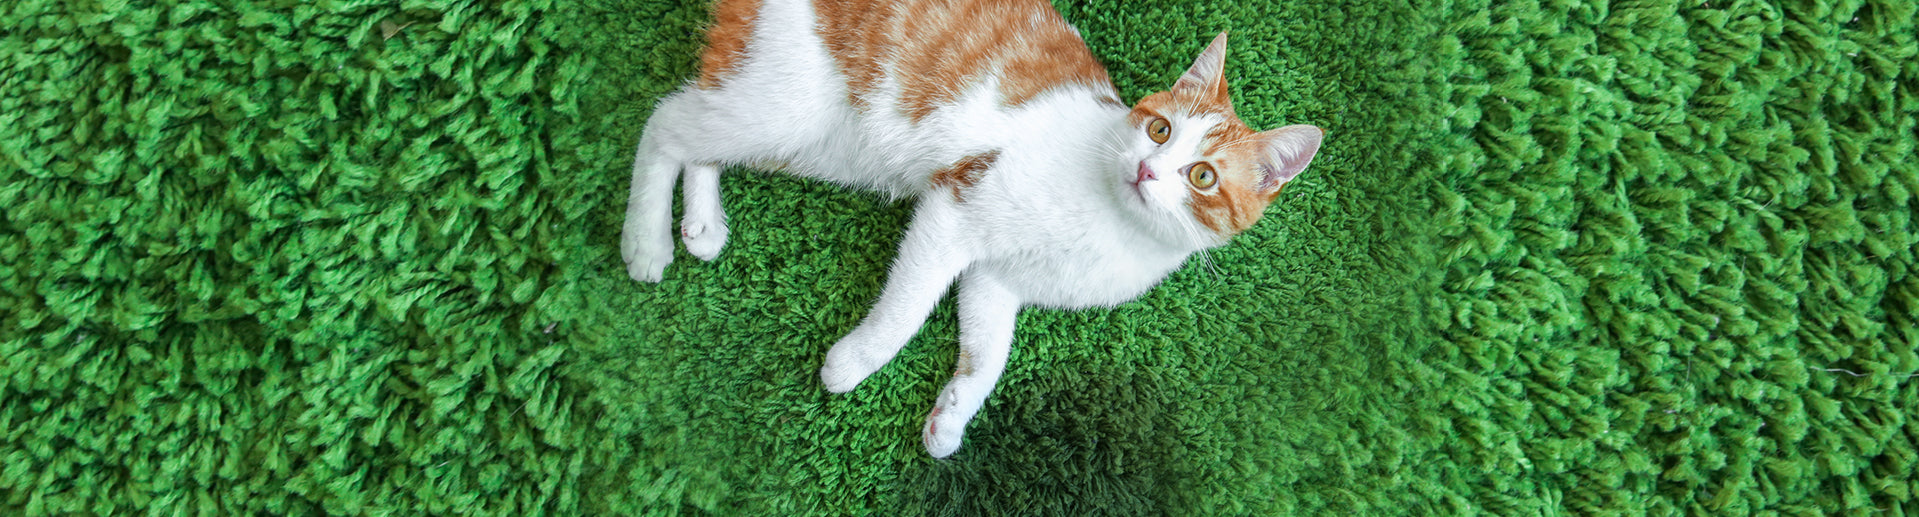 Why Inappropriate Peeing Happens Outside the Litter Box